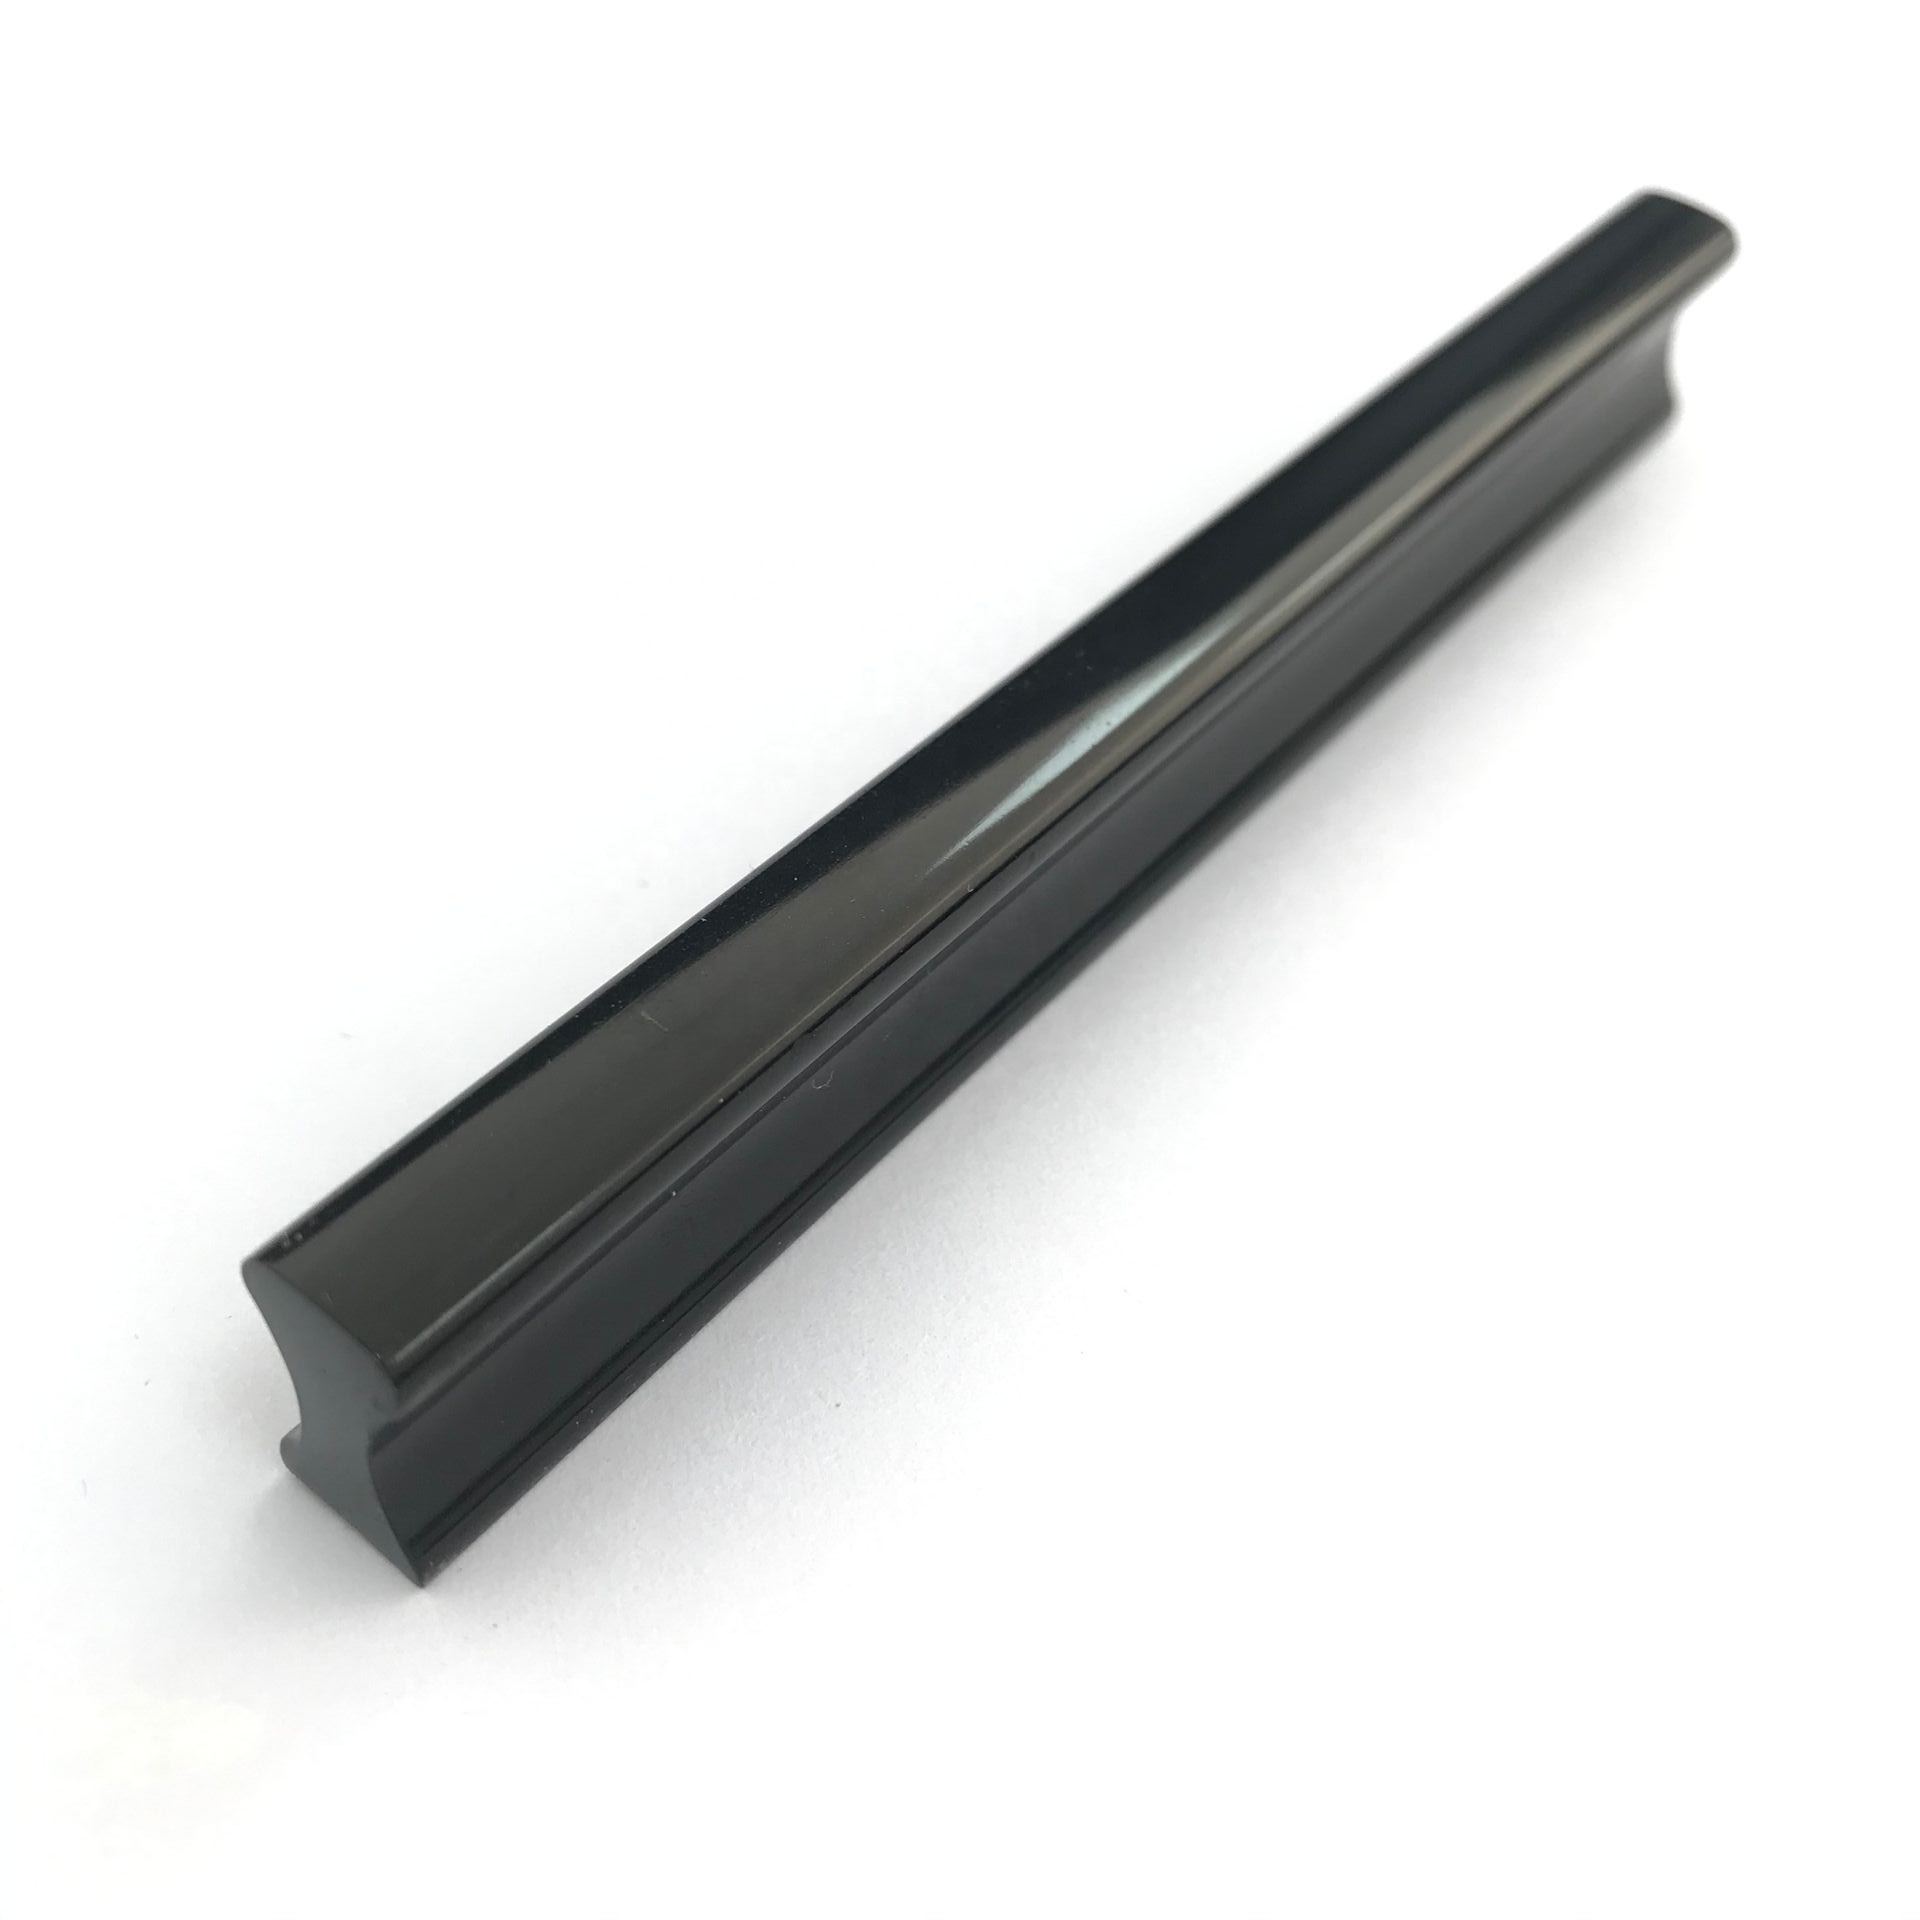 64mm 96mm 128mm 160mm High Quality Matt Black & Shiny Black Furniture Cabinet Drawer Aluminum Profile Strip Pull Handle